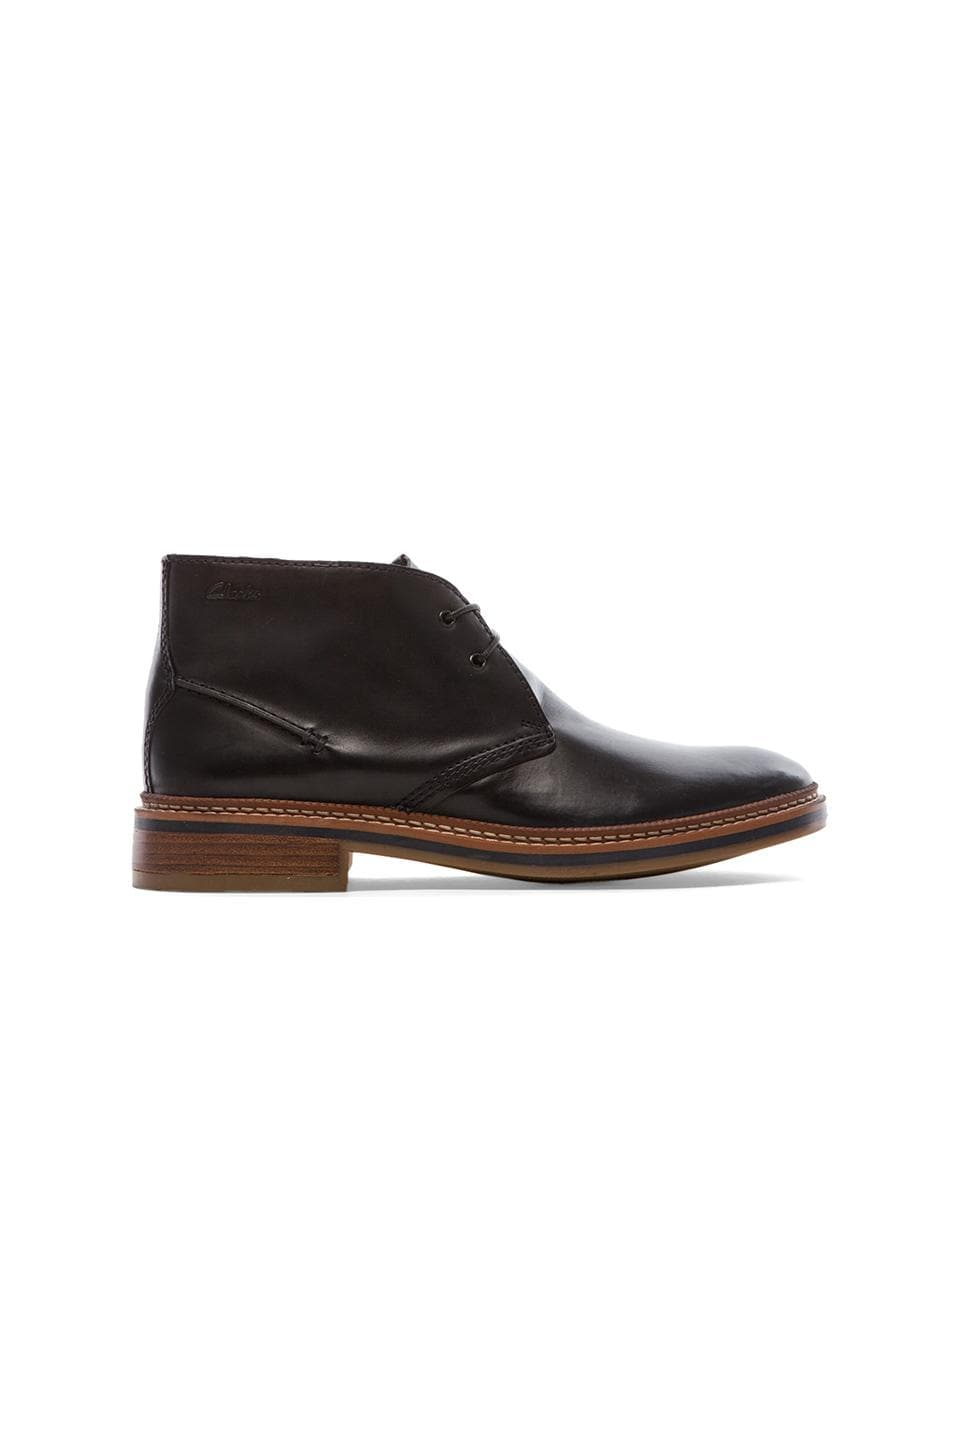 Clarks Grimsby Hi in Black Leather